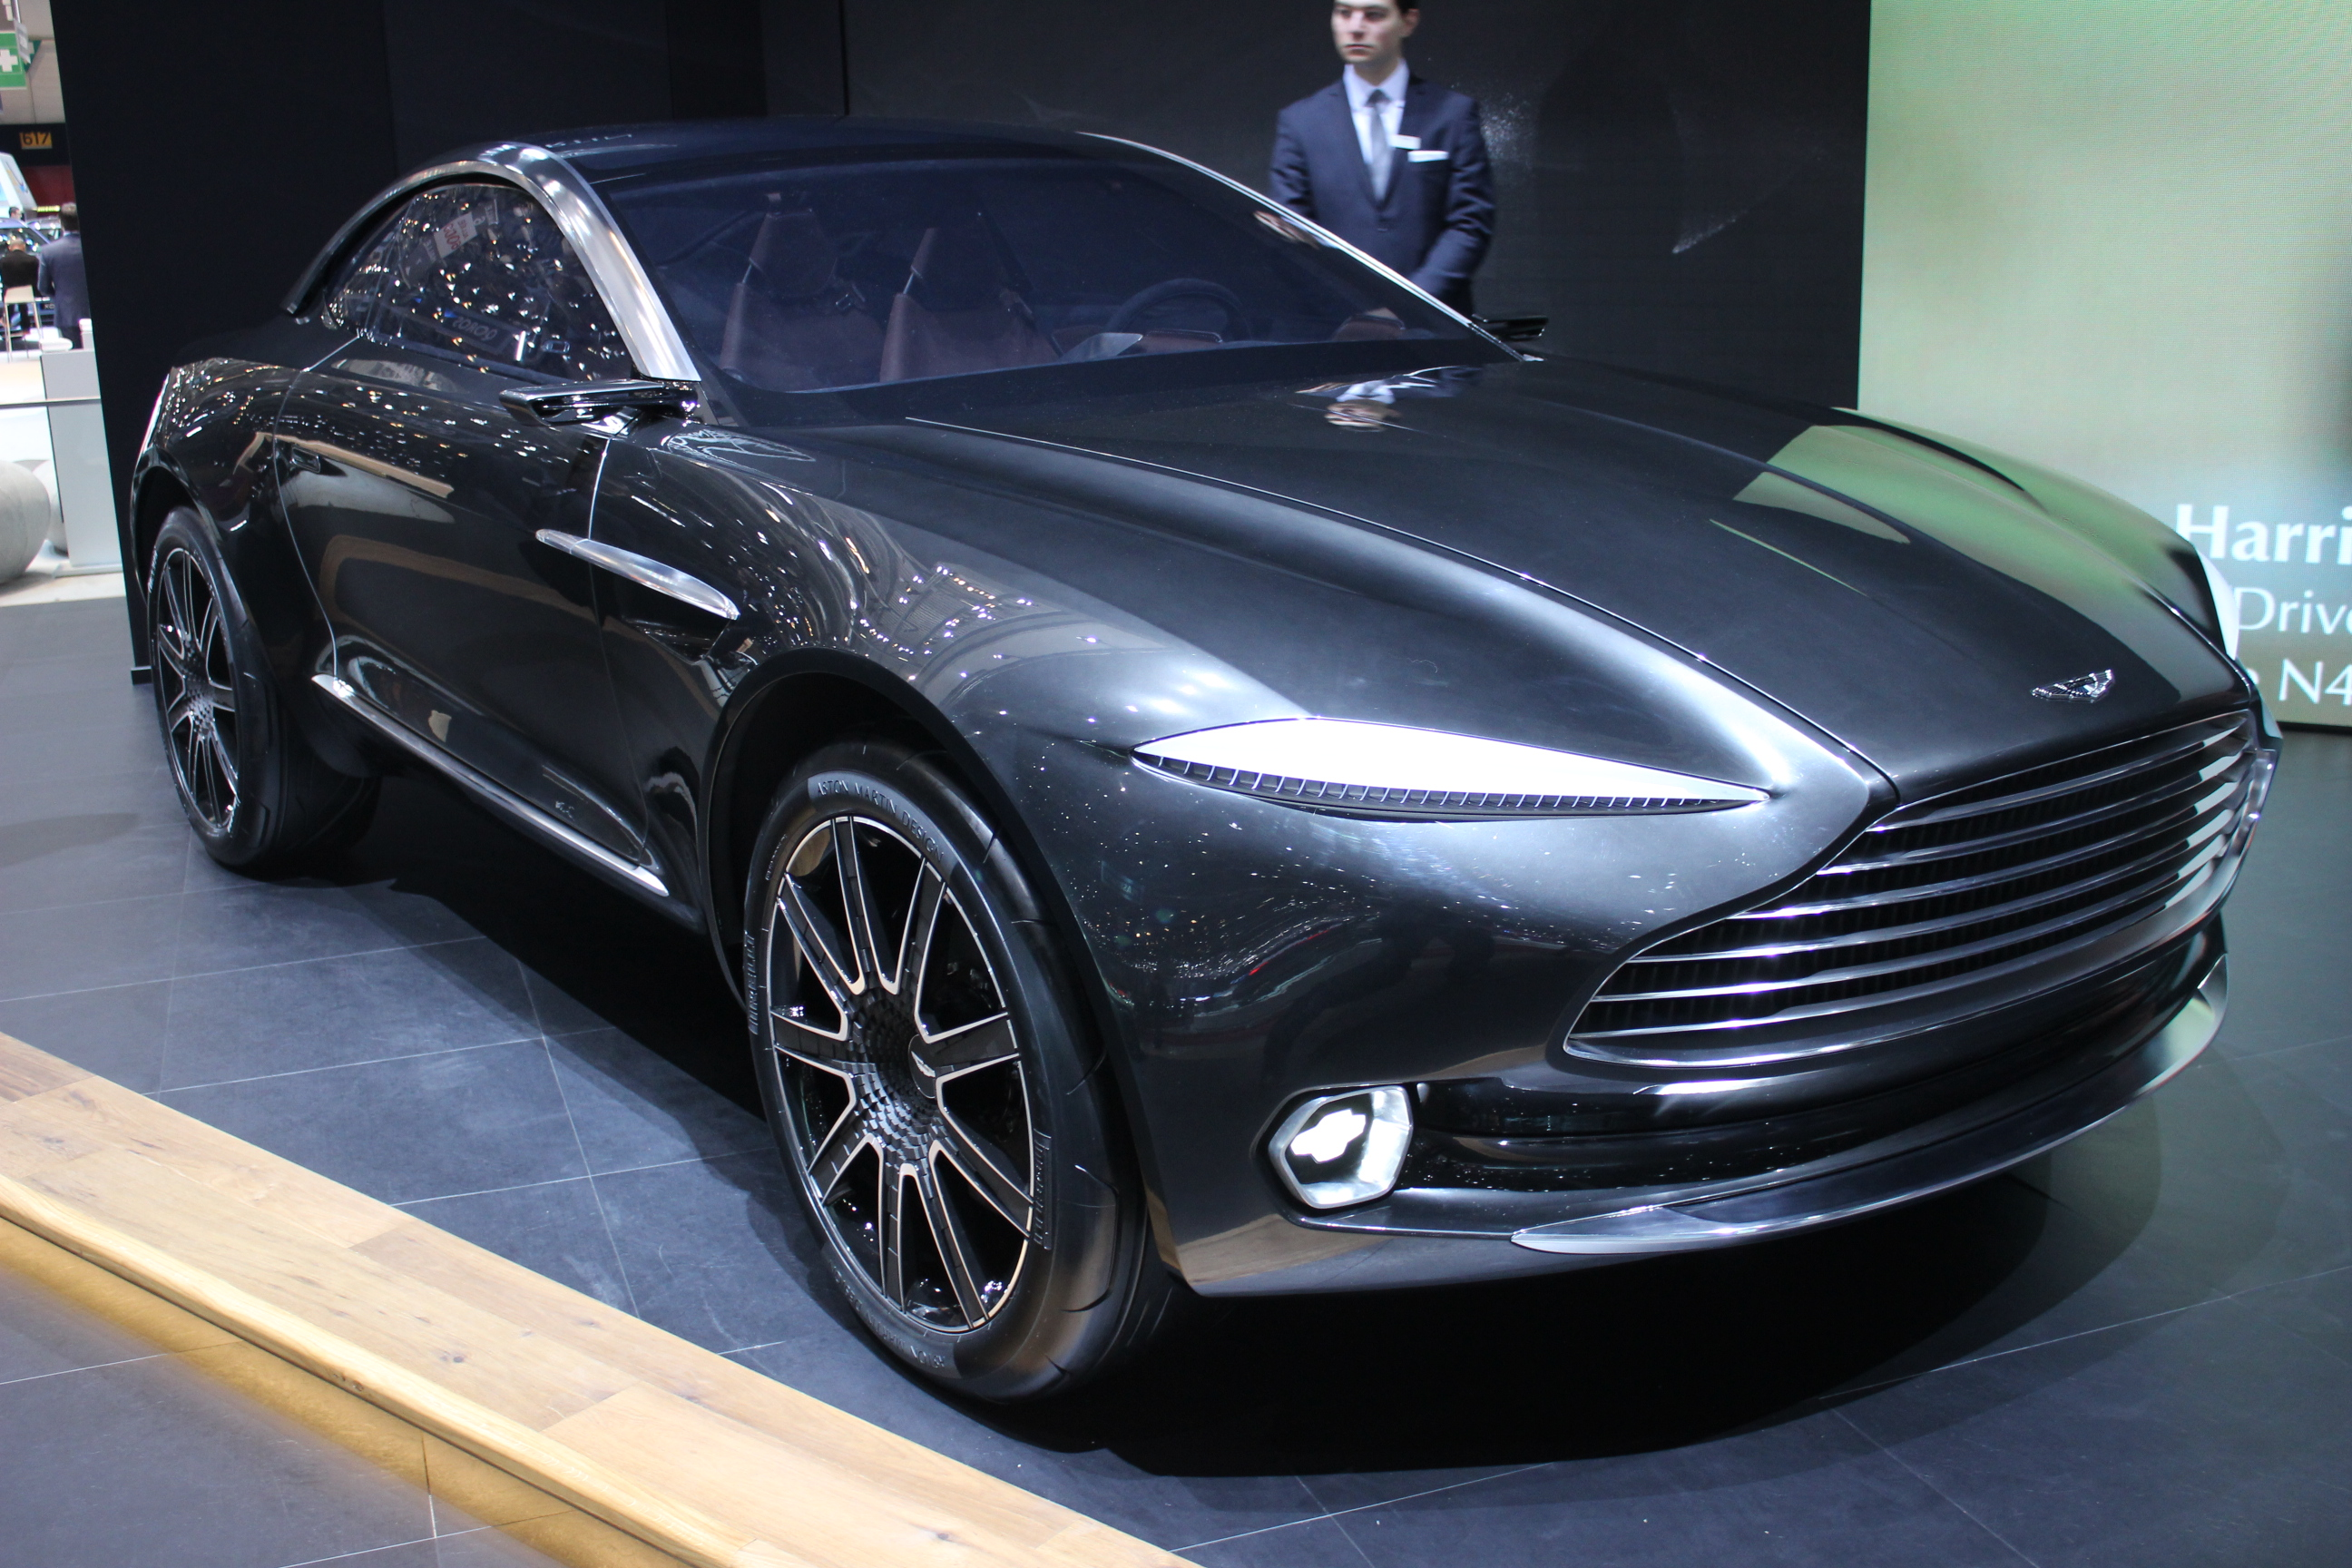 aston martin dbx le suv de gaydon en direct du salon de gen ve 2015. Black Bedroom Furniture Sets. Home Design Ideas